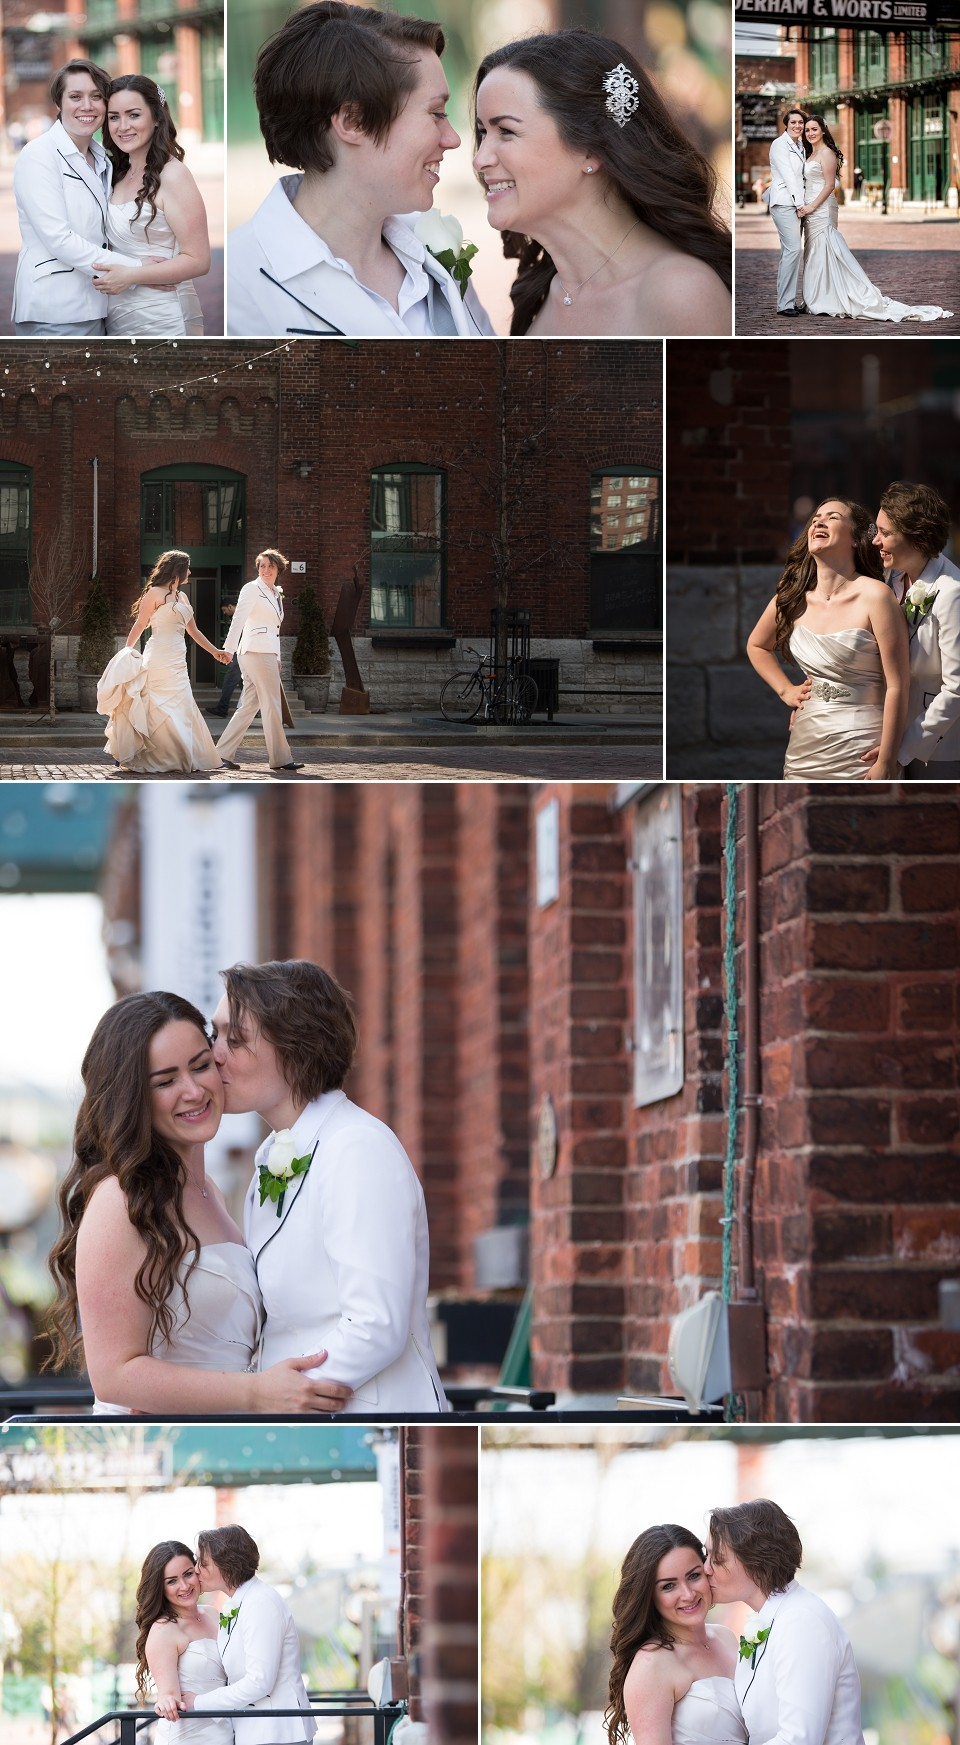 Wedding photography at the Toronto Distillery District